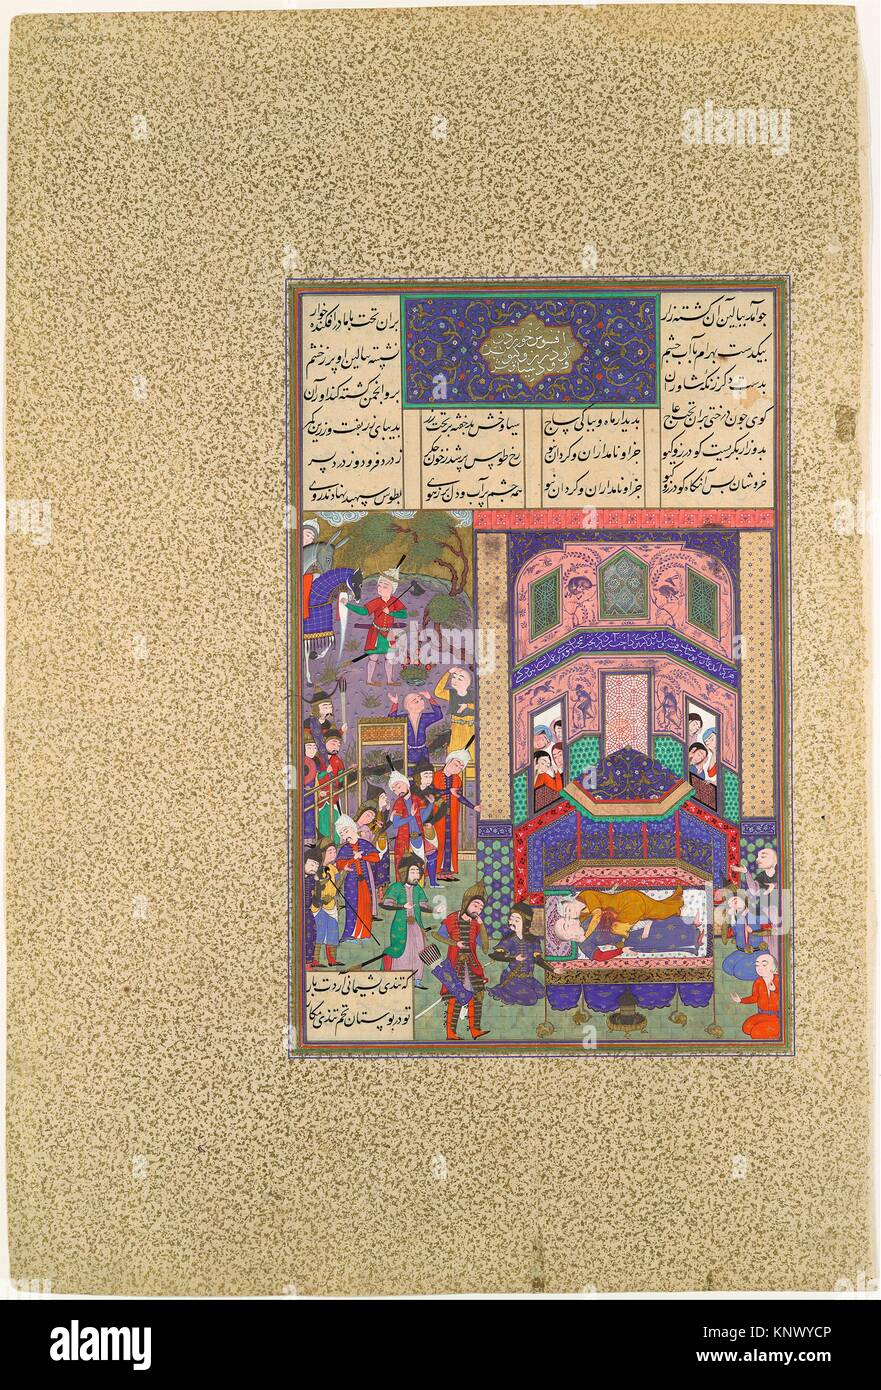 The Iranians Mourn Farud and Jarira, Folio 236r from the Shahnama (Book of Kings) of Shah Tahmasp. Author: Abu'l - Stock Image